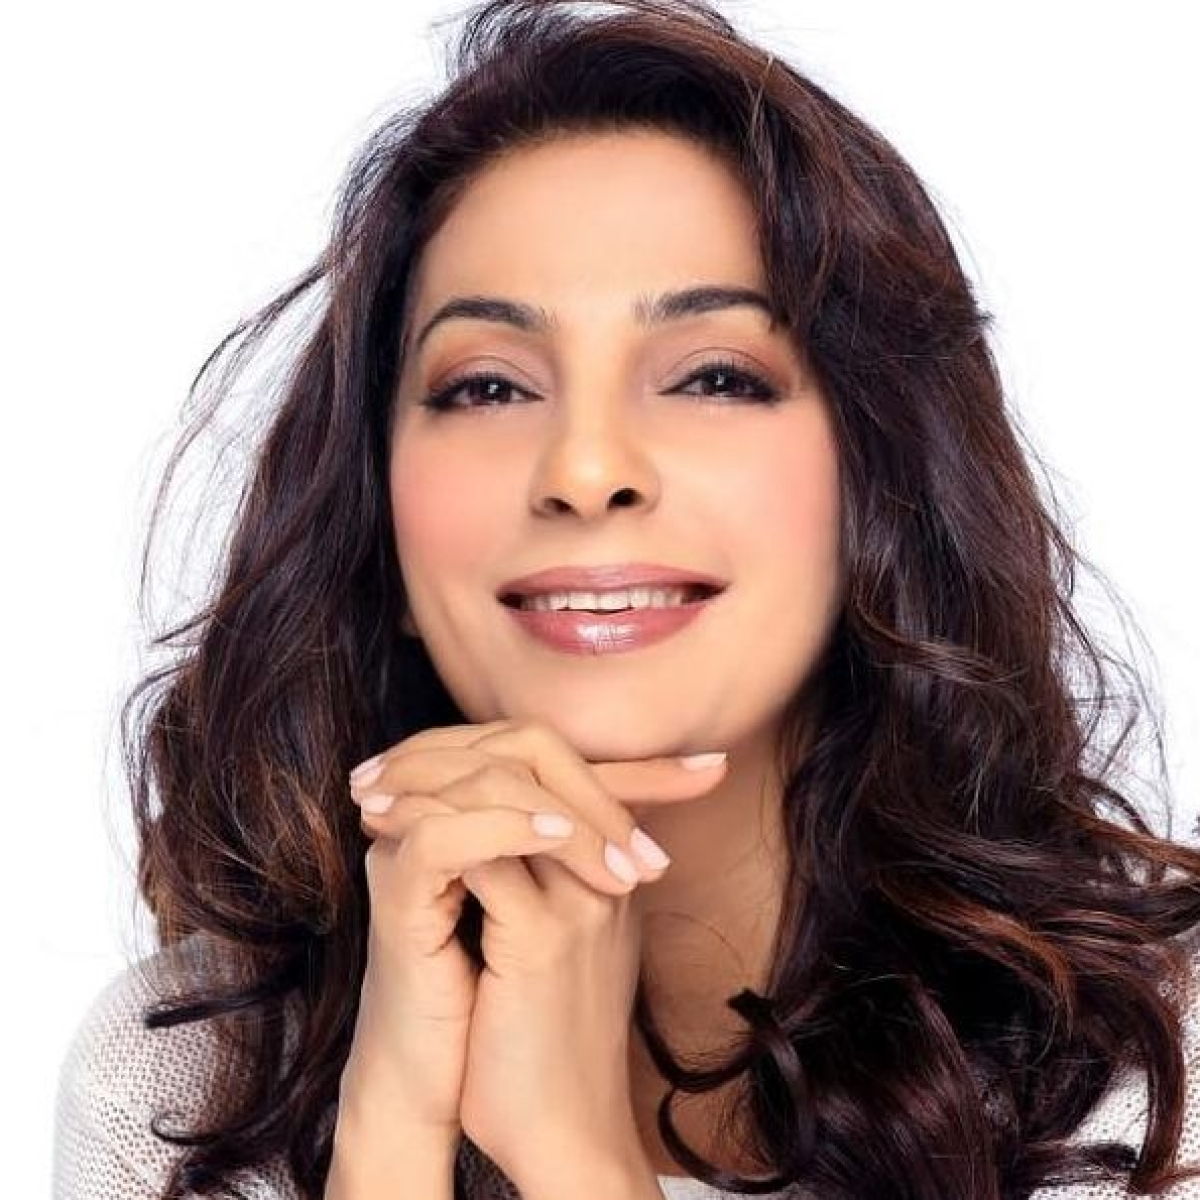 Juhi Chawla loses diamond earring at Mumbai airport, promises to reward one who finds it